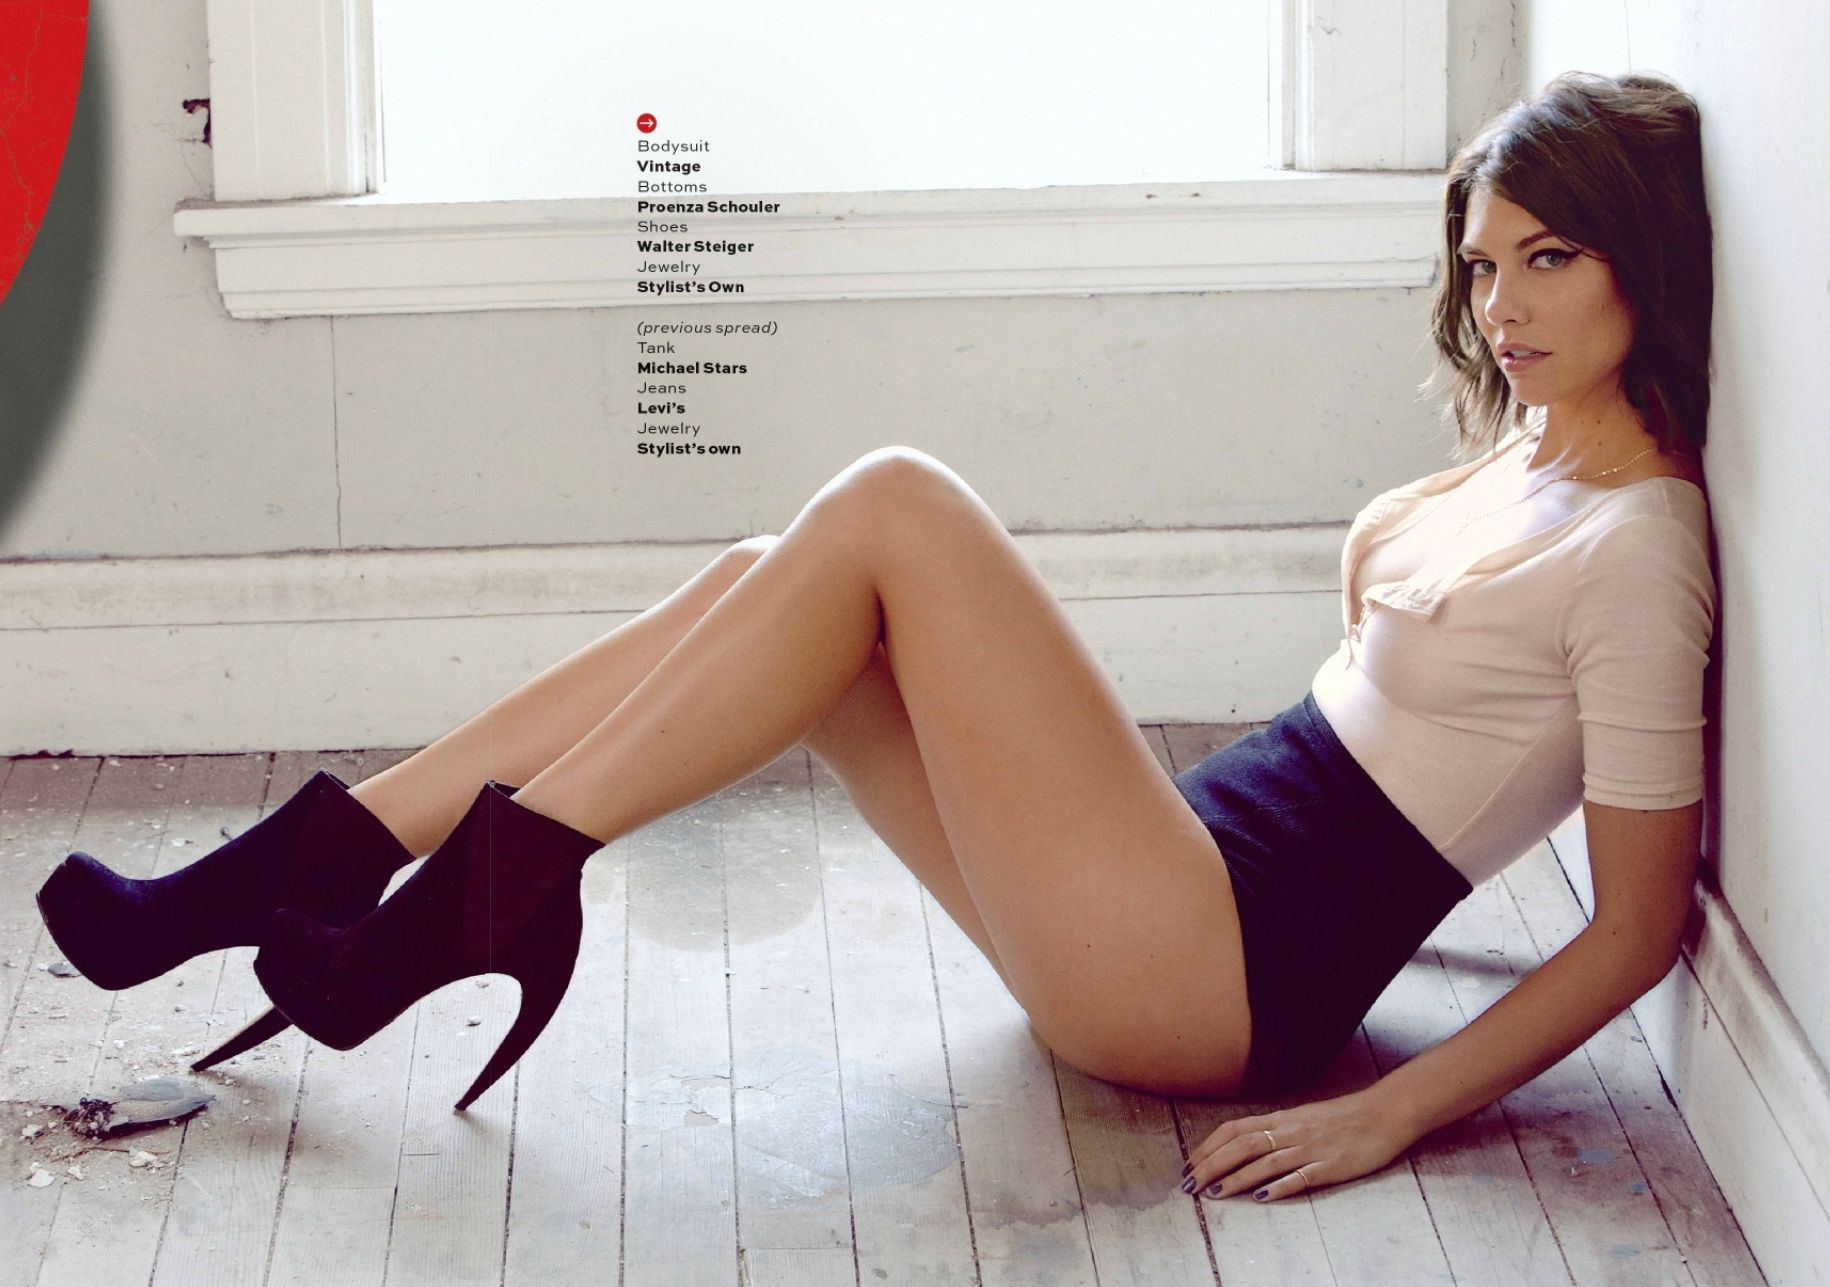 The Walking Dead's Lauren Cohan does a sexy Maxim photo